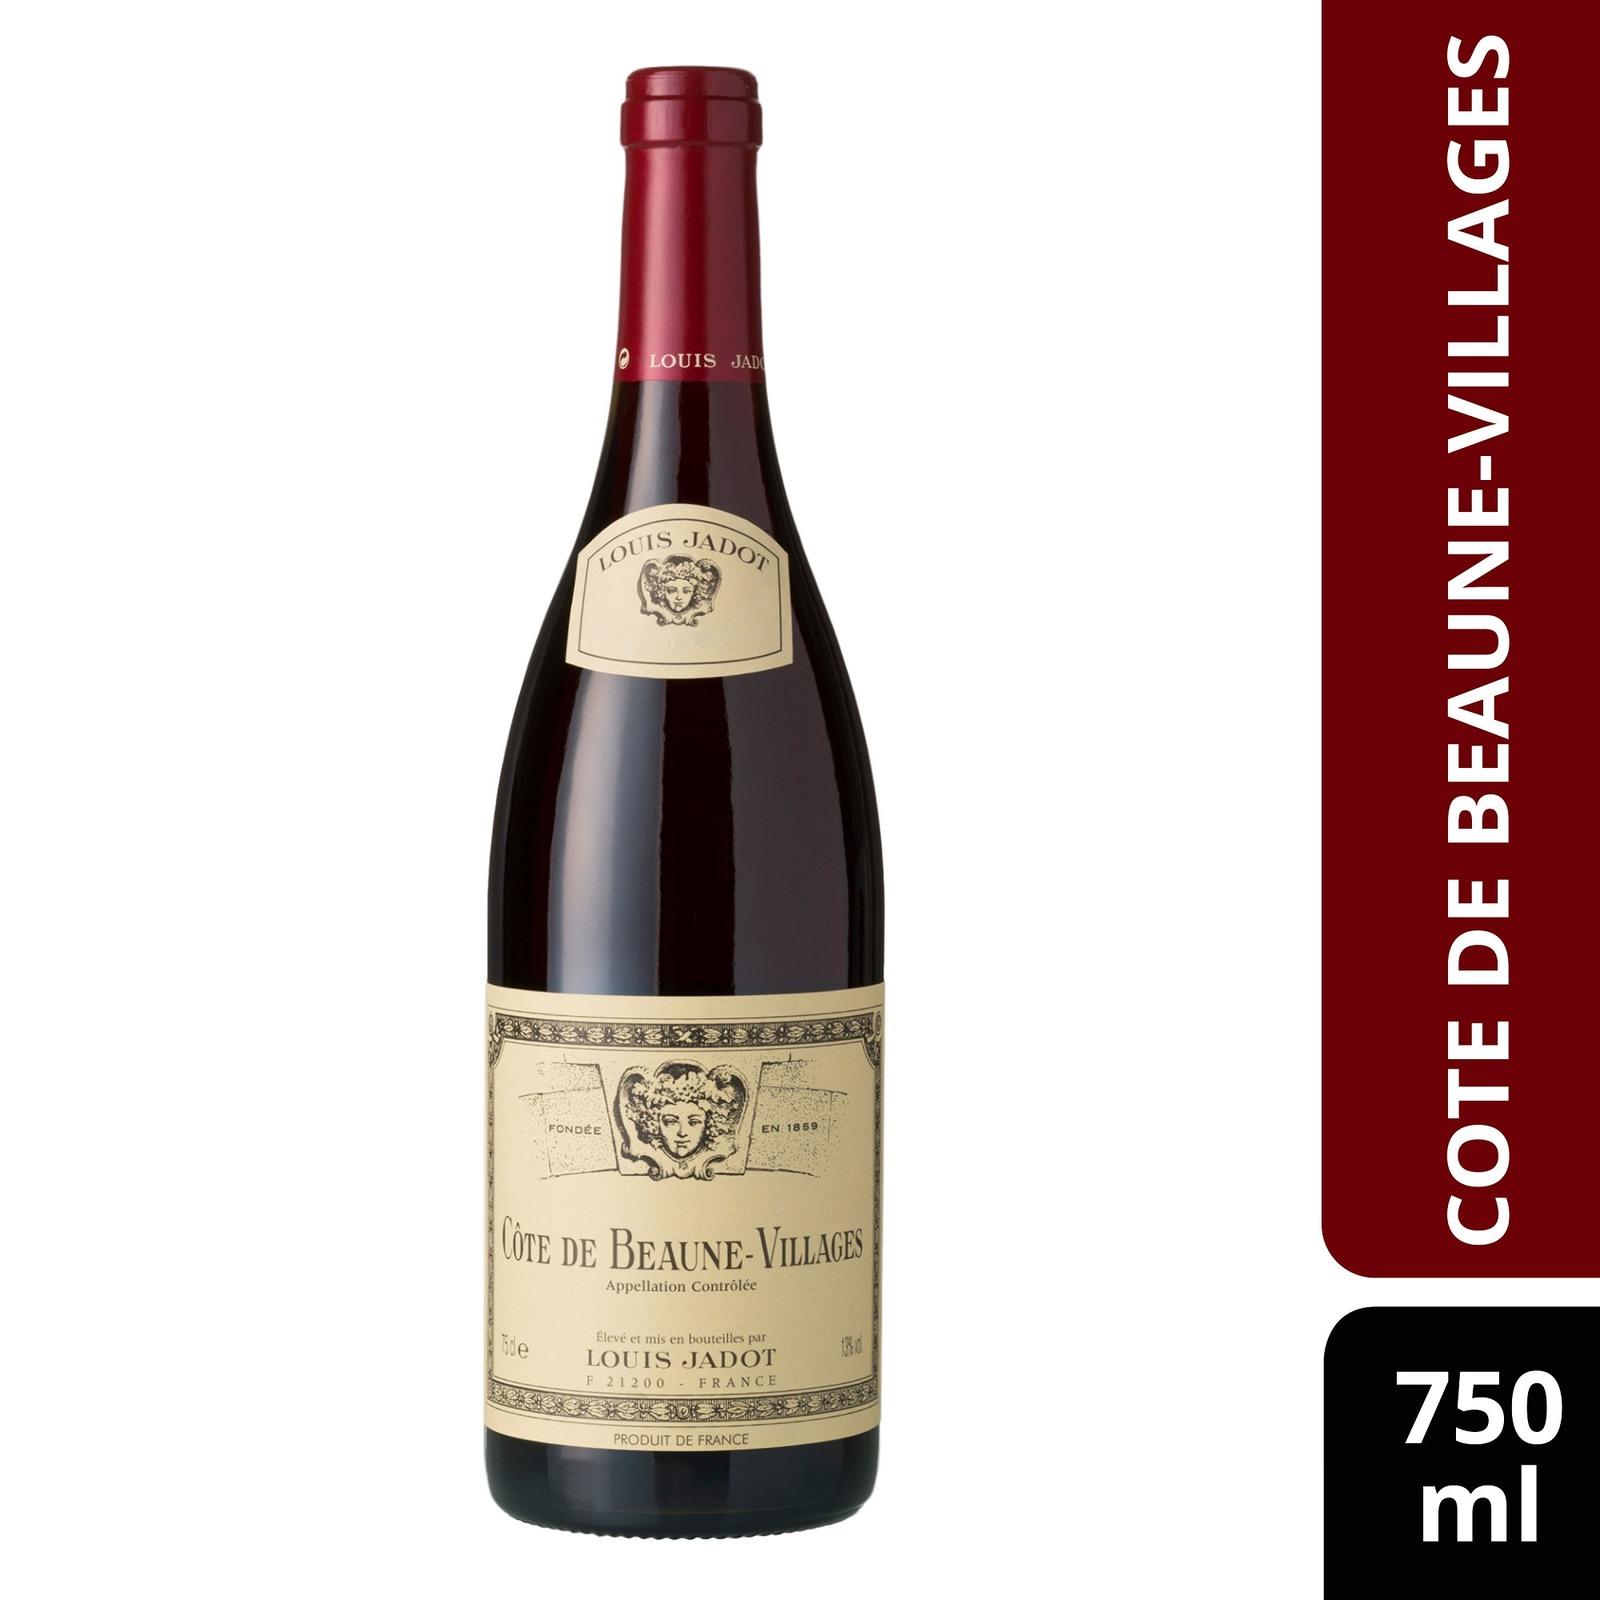 Louis Jadot Cote-De-Beaune Villages-By Culina